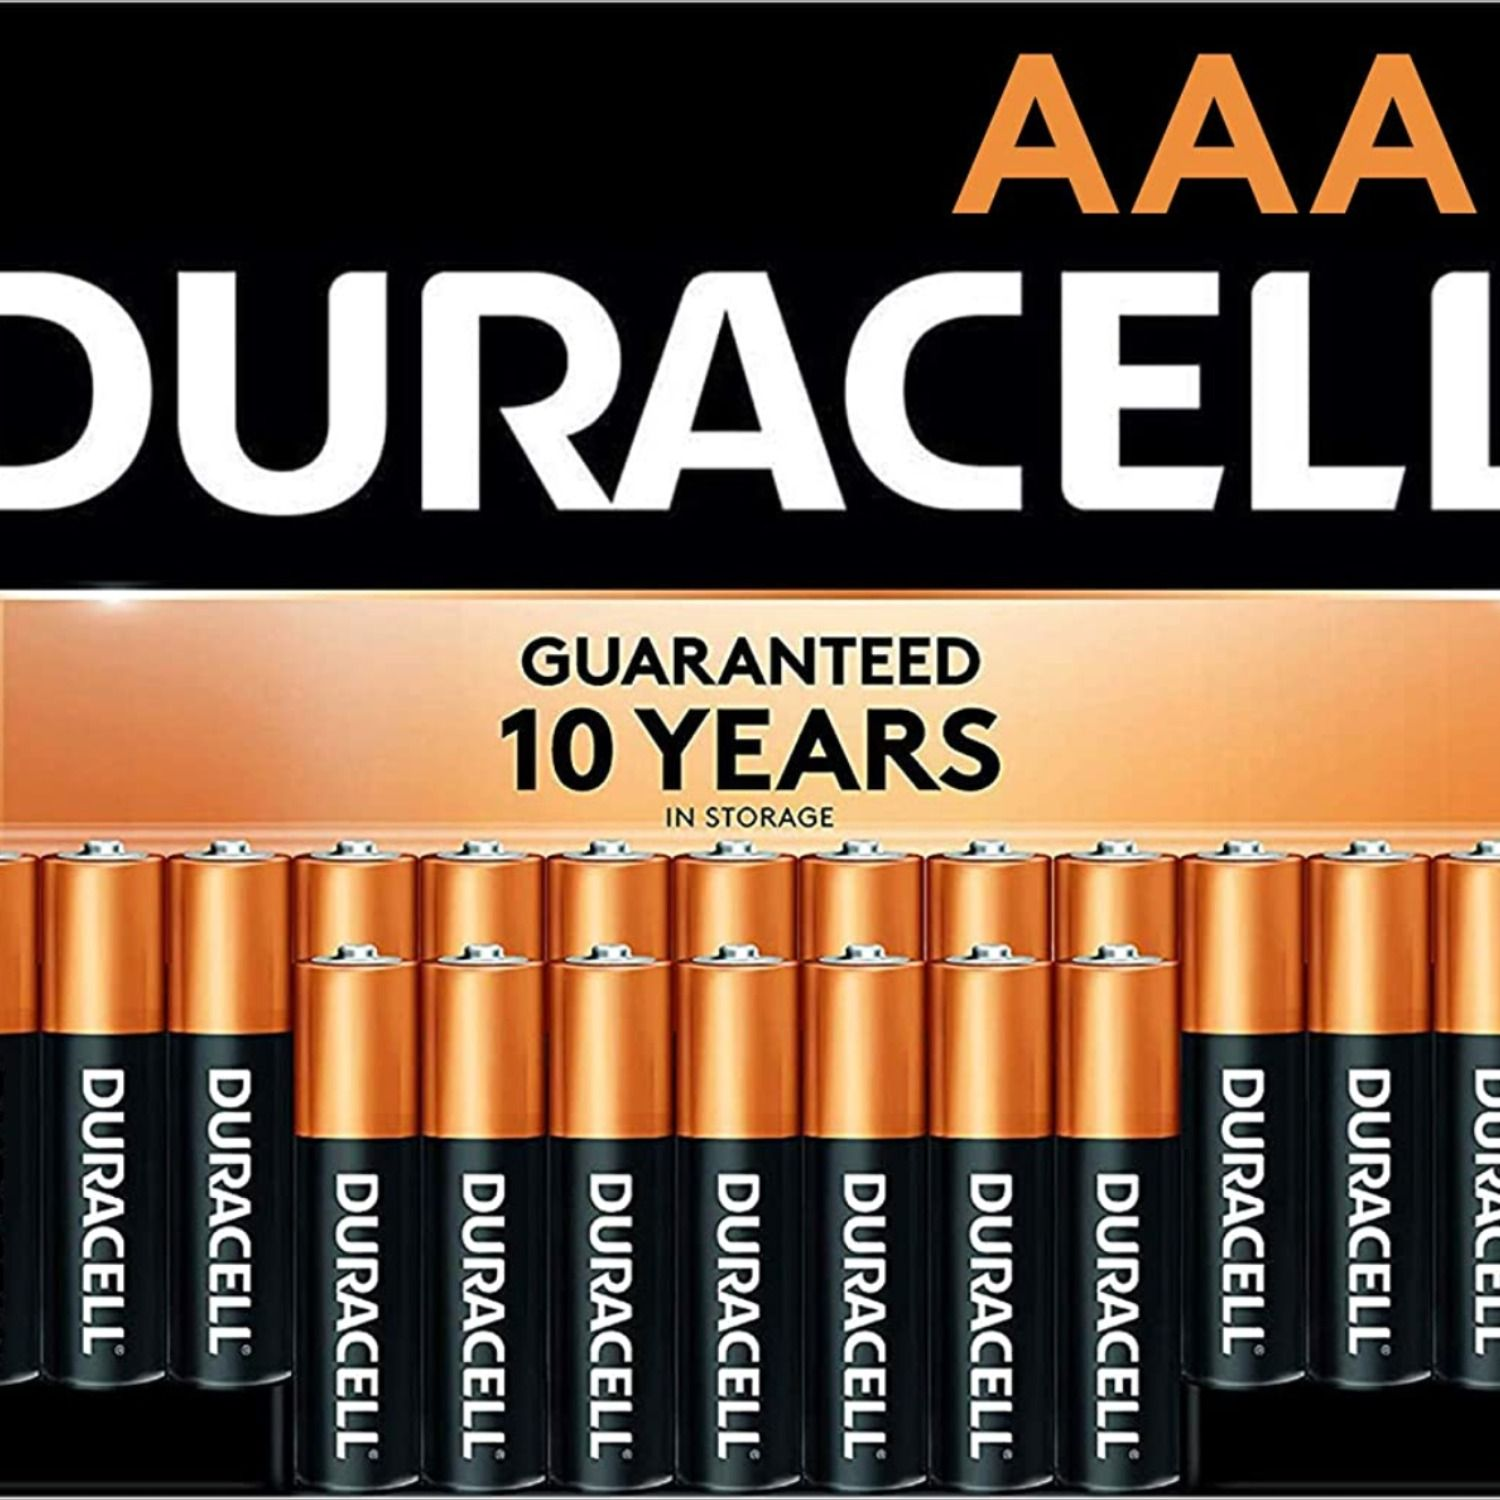 Duracell Coppertop Aaa Alkaline Batteries Long Lasting All Purpose Triple A Battery Duracell Duracell Batteries Alkaline Battery